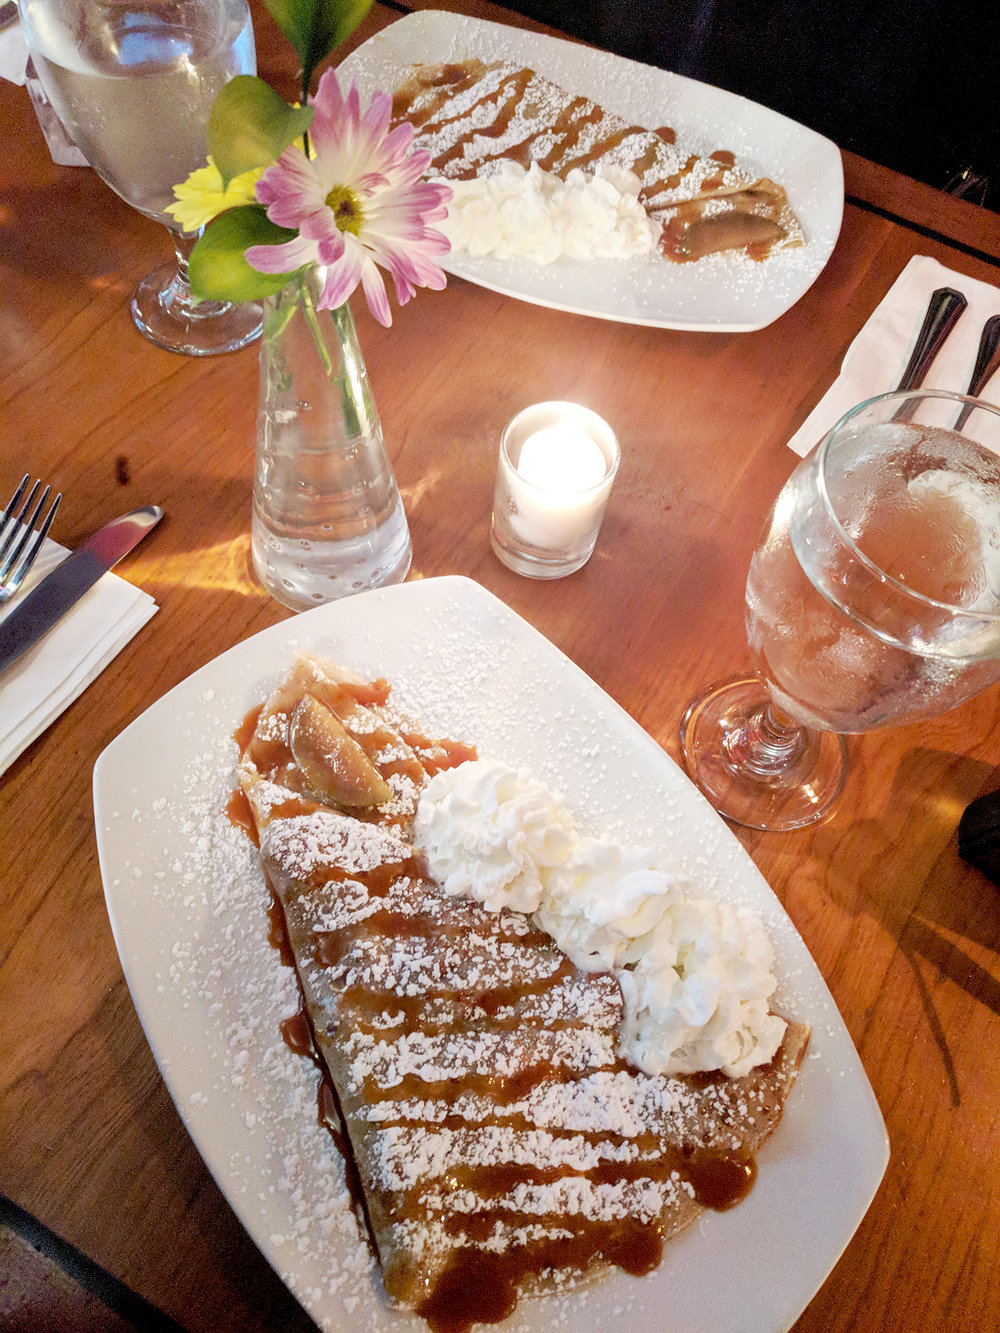 Le-happy-crepe-table.jpg